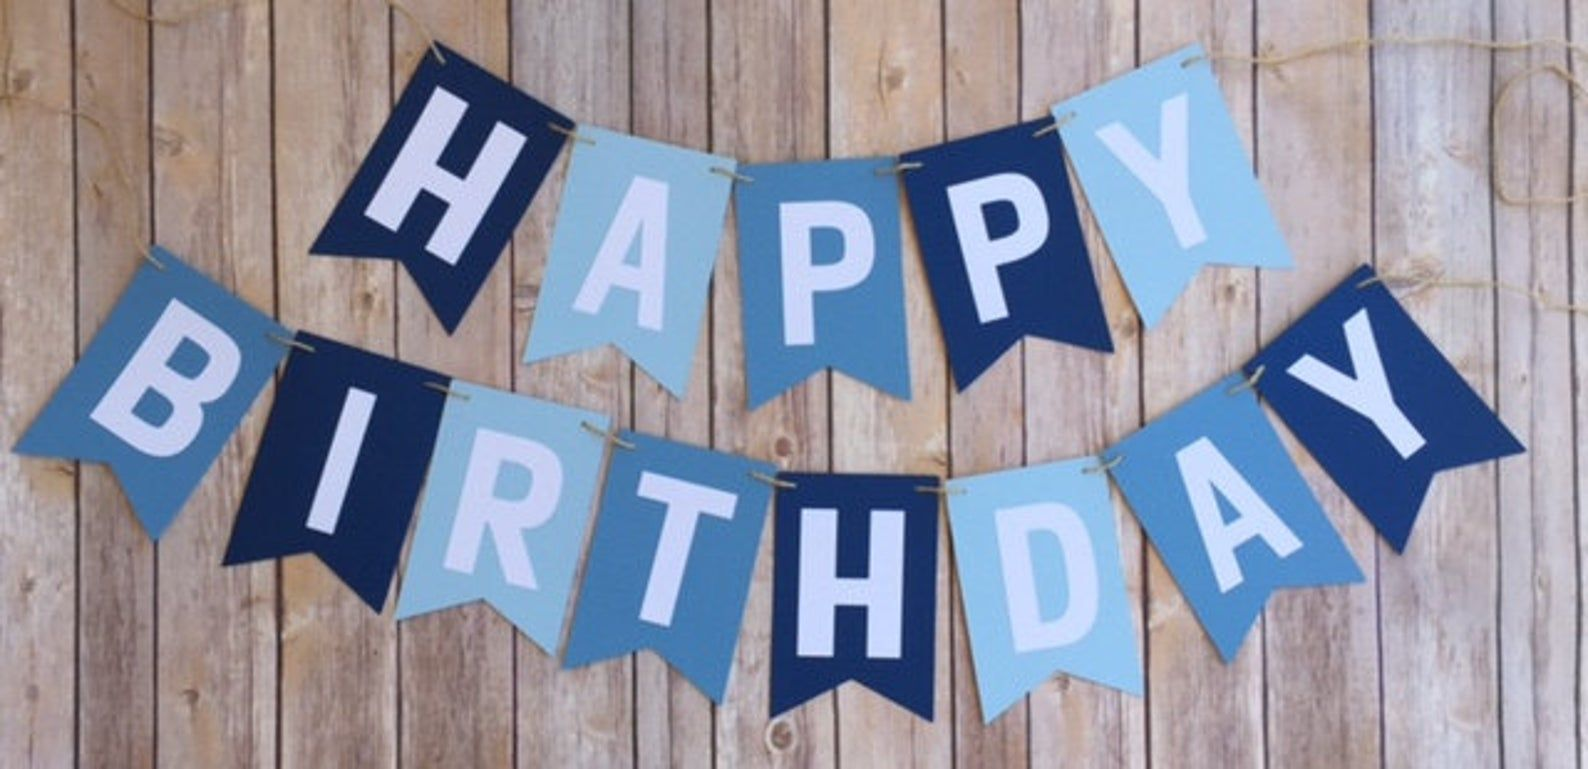 Buy Baby Boy 1st Birthday Decorations And Photo Banner 0 12 Month First Birthday Crown Cake Topper One Happy Birthday Balloons Banner Number 1 Foil Balloon Blue And White Balloons Party Decorations Online